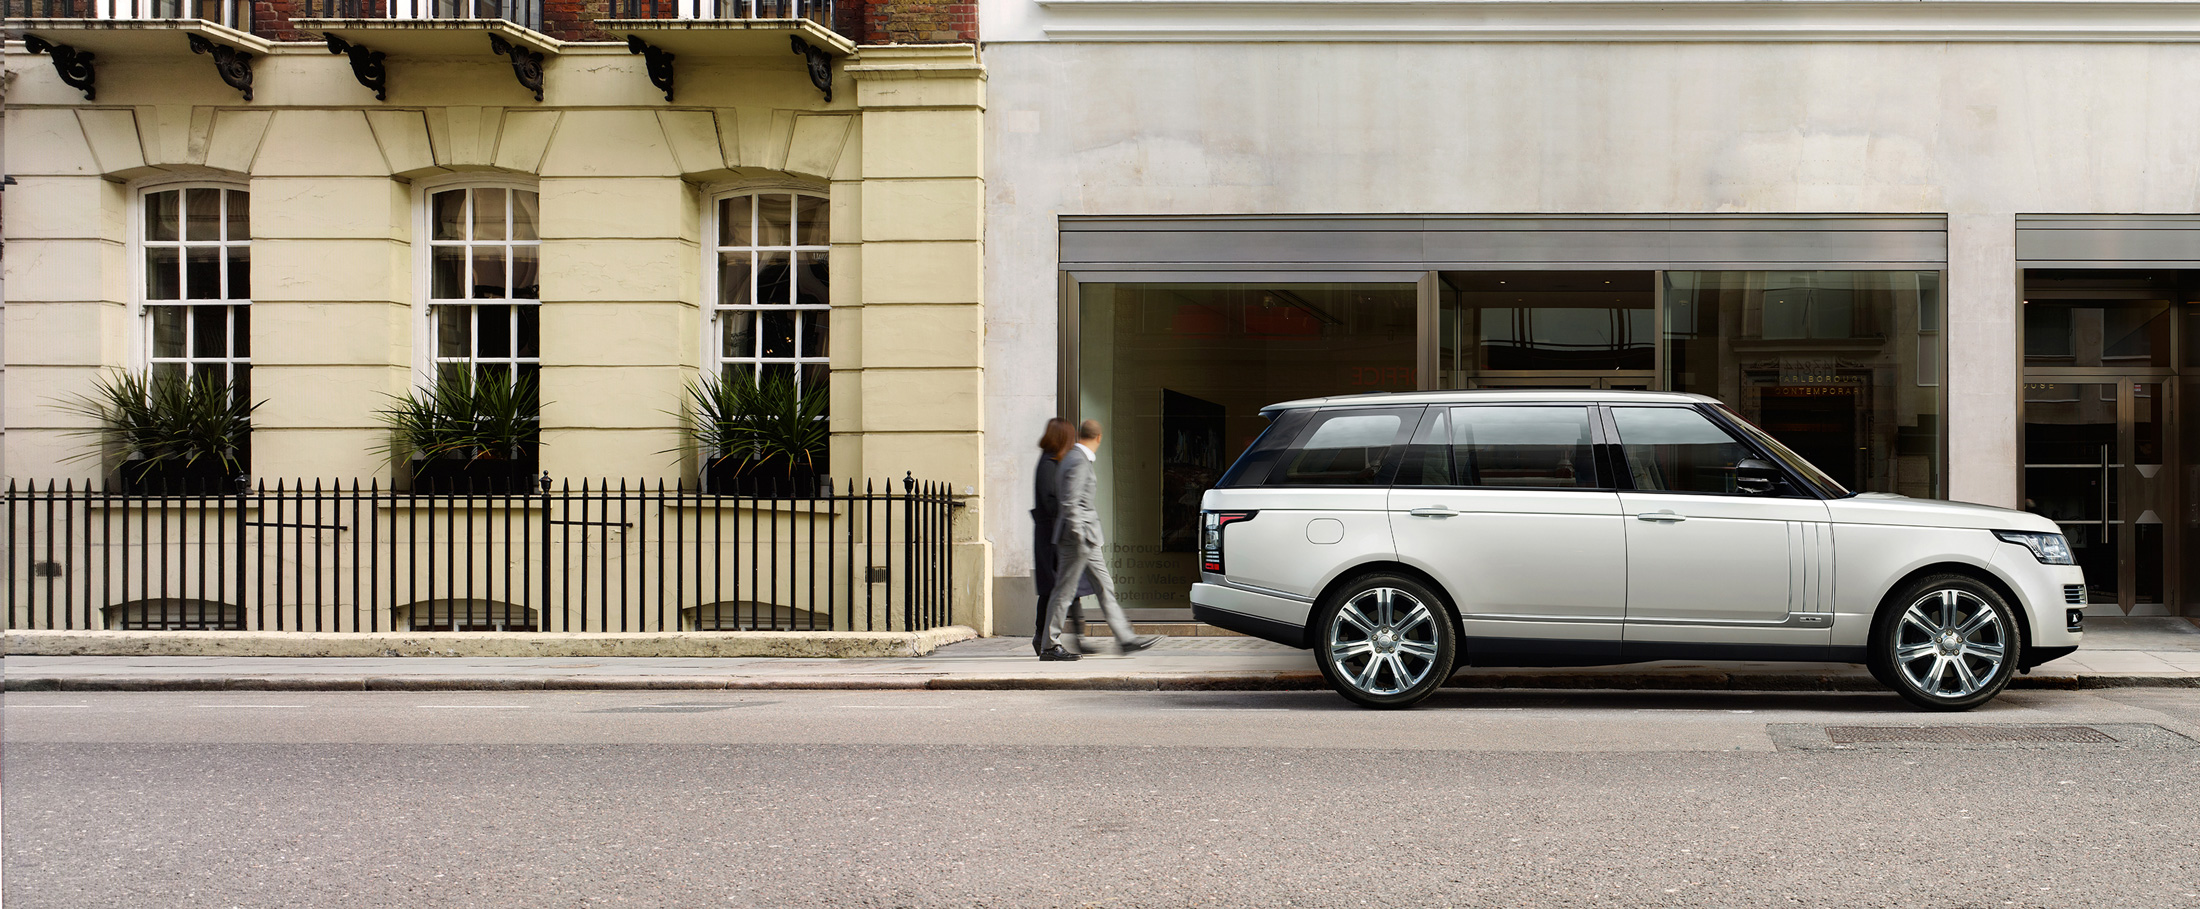 Range Rover Supercharged LWB Review The $121 000 Gentleman s Tank